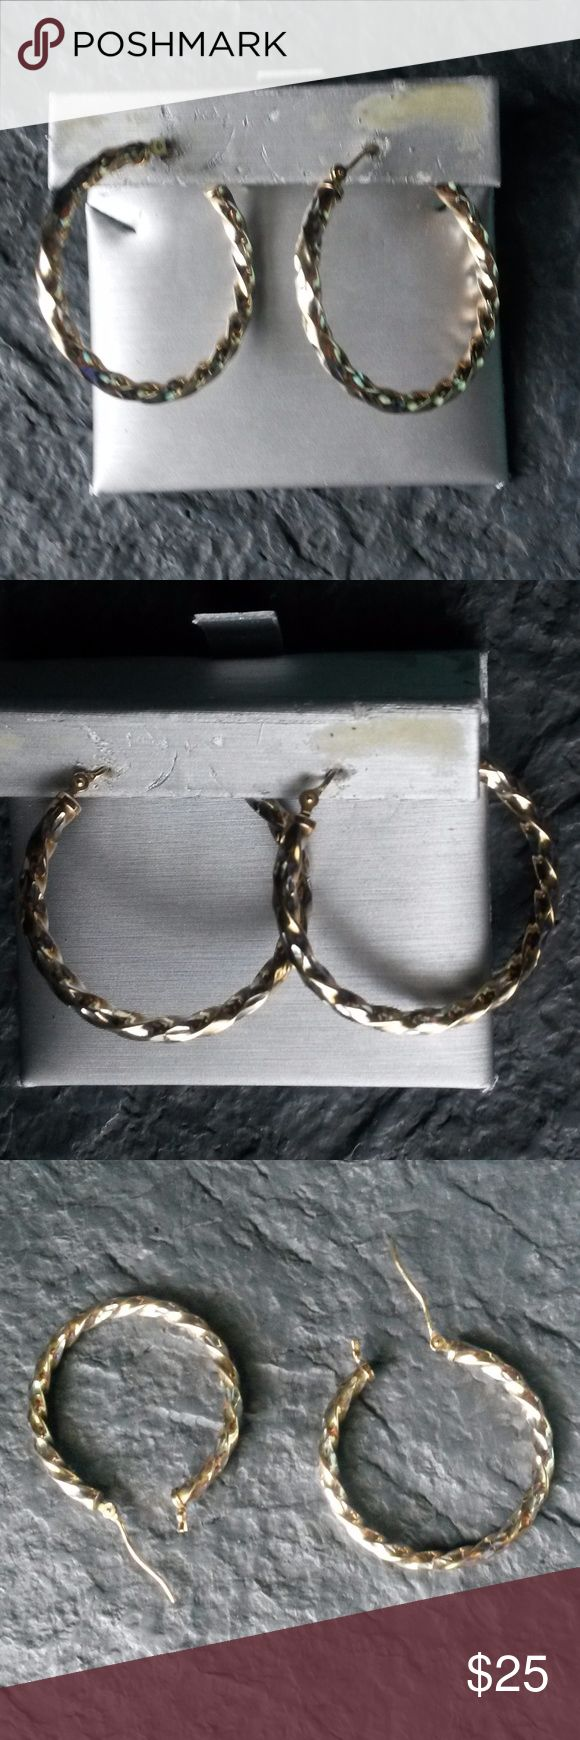 Silver and gold rope earrings Zales silver and gold rope earrings with a gold post. Diameter is a little bit bigger than a quarter.  No numbers or lettering that I can locate on them.EUC Zales Jewelry Earrings